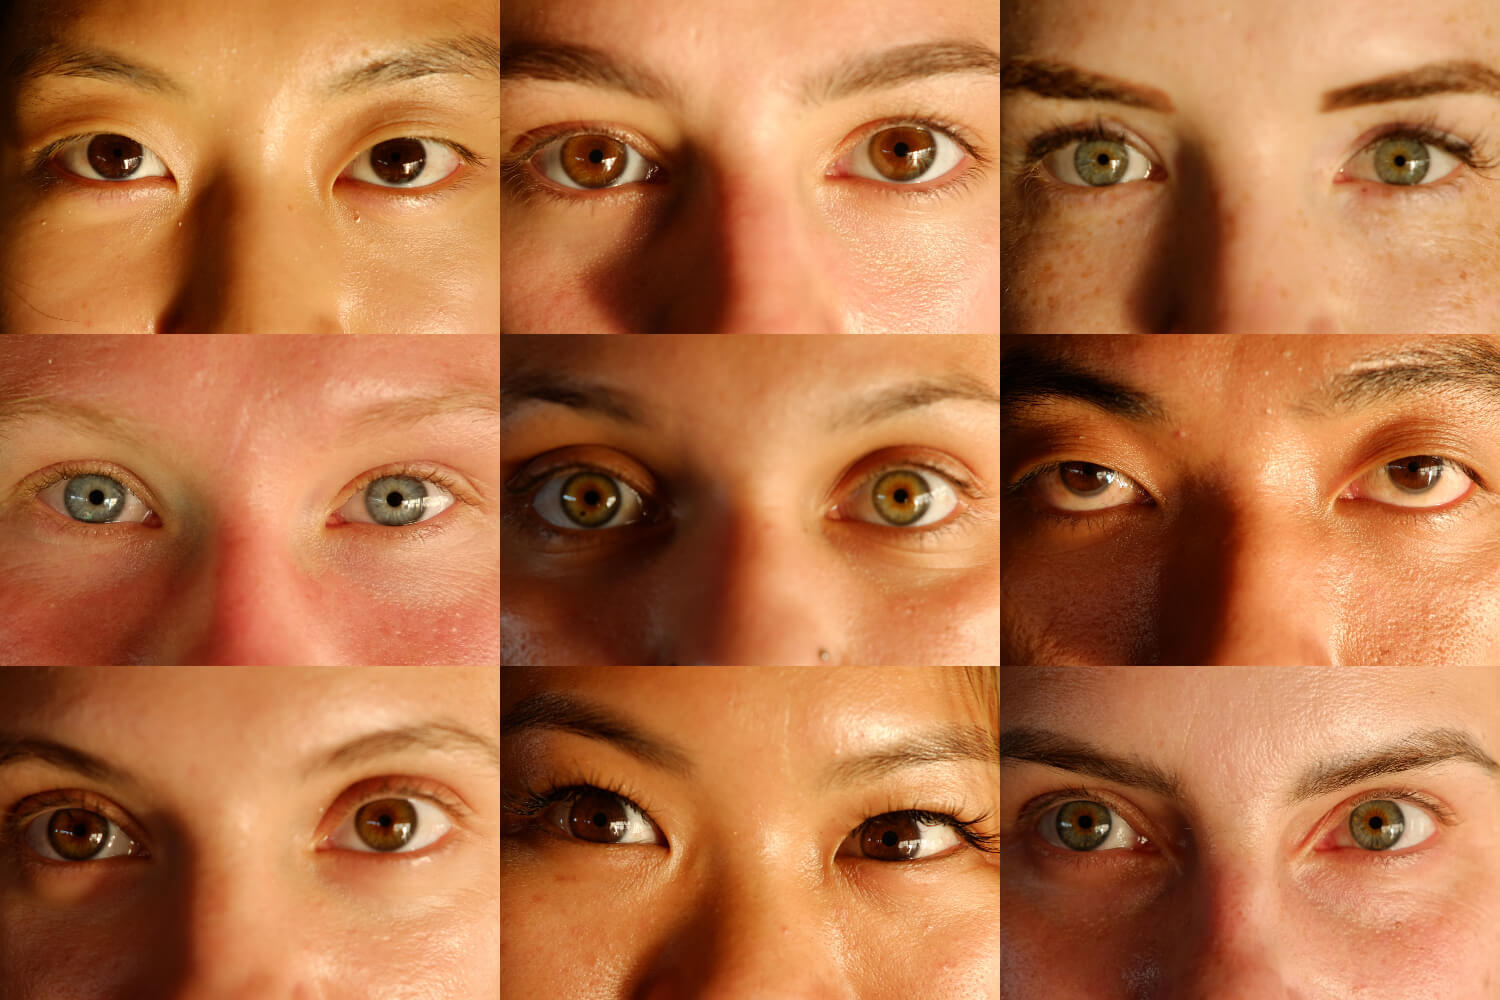 eyes collage of yoga students in bali